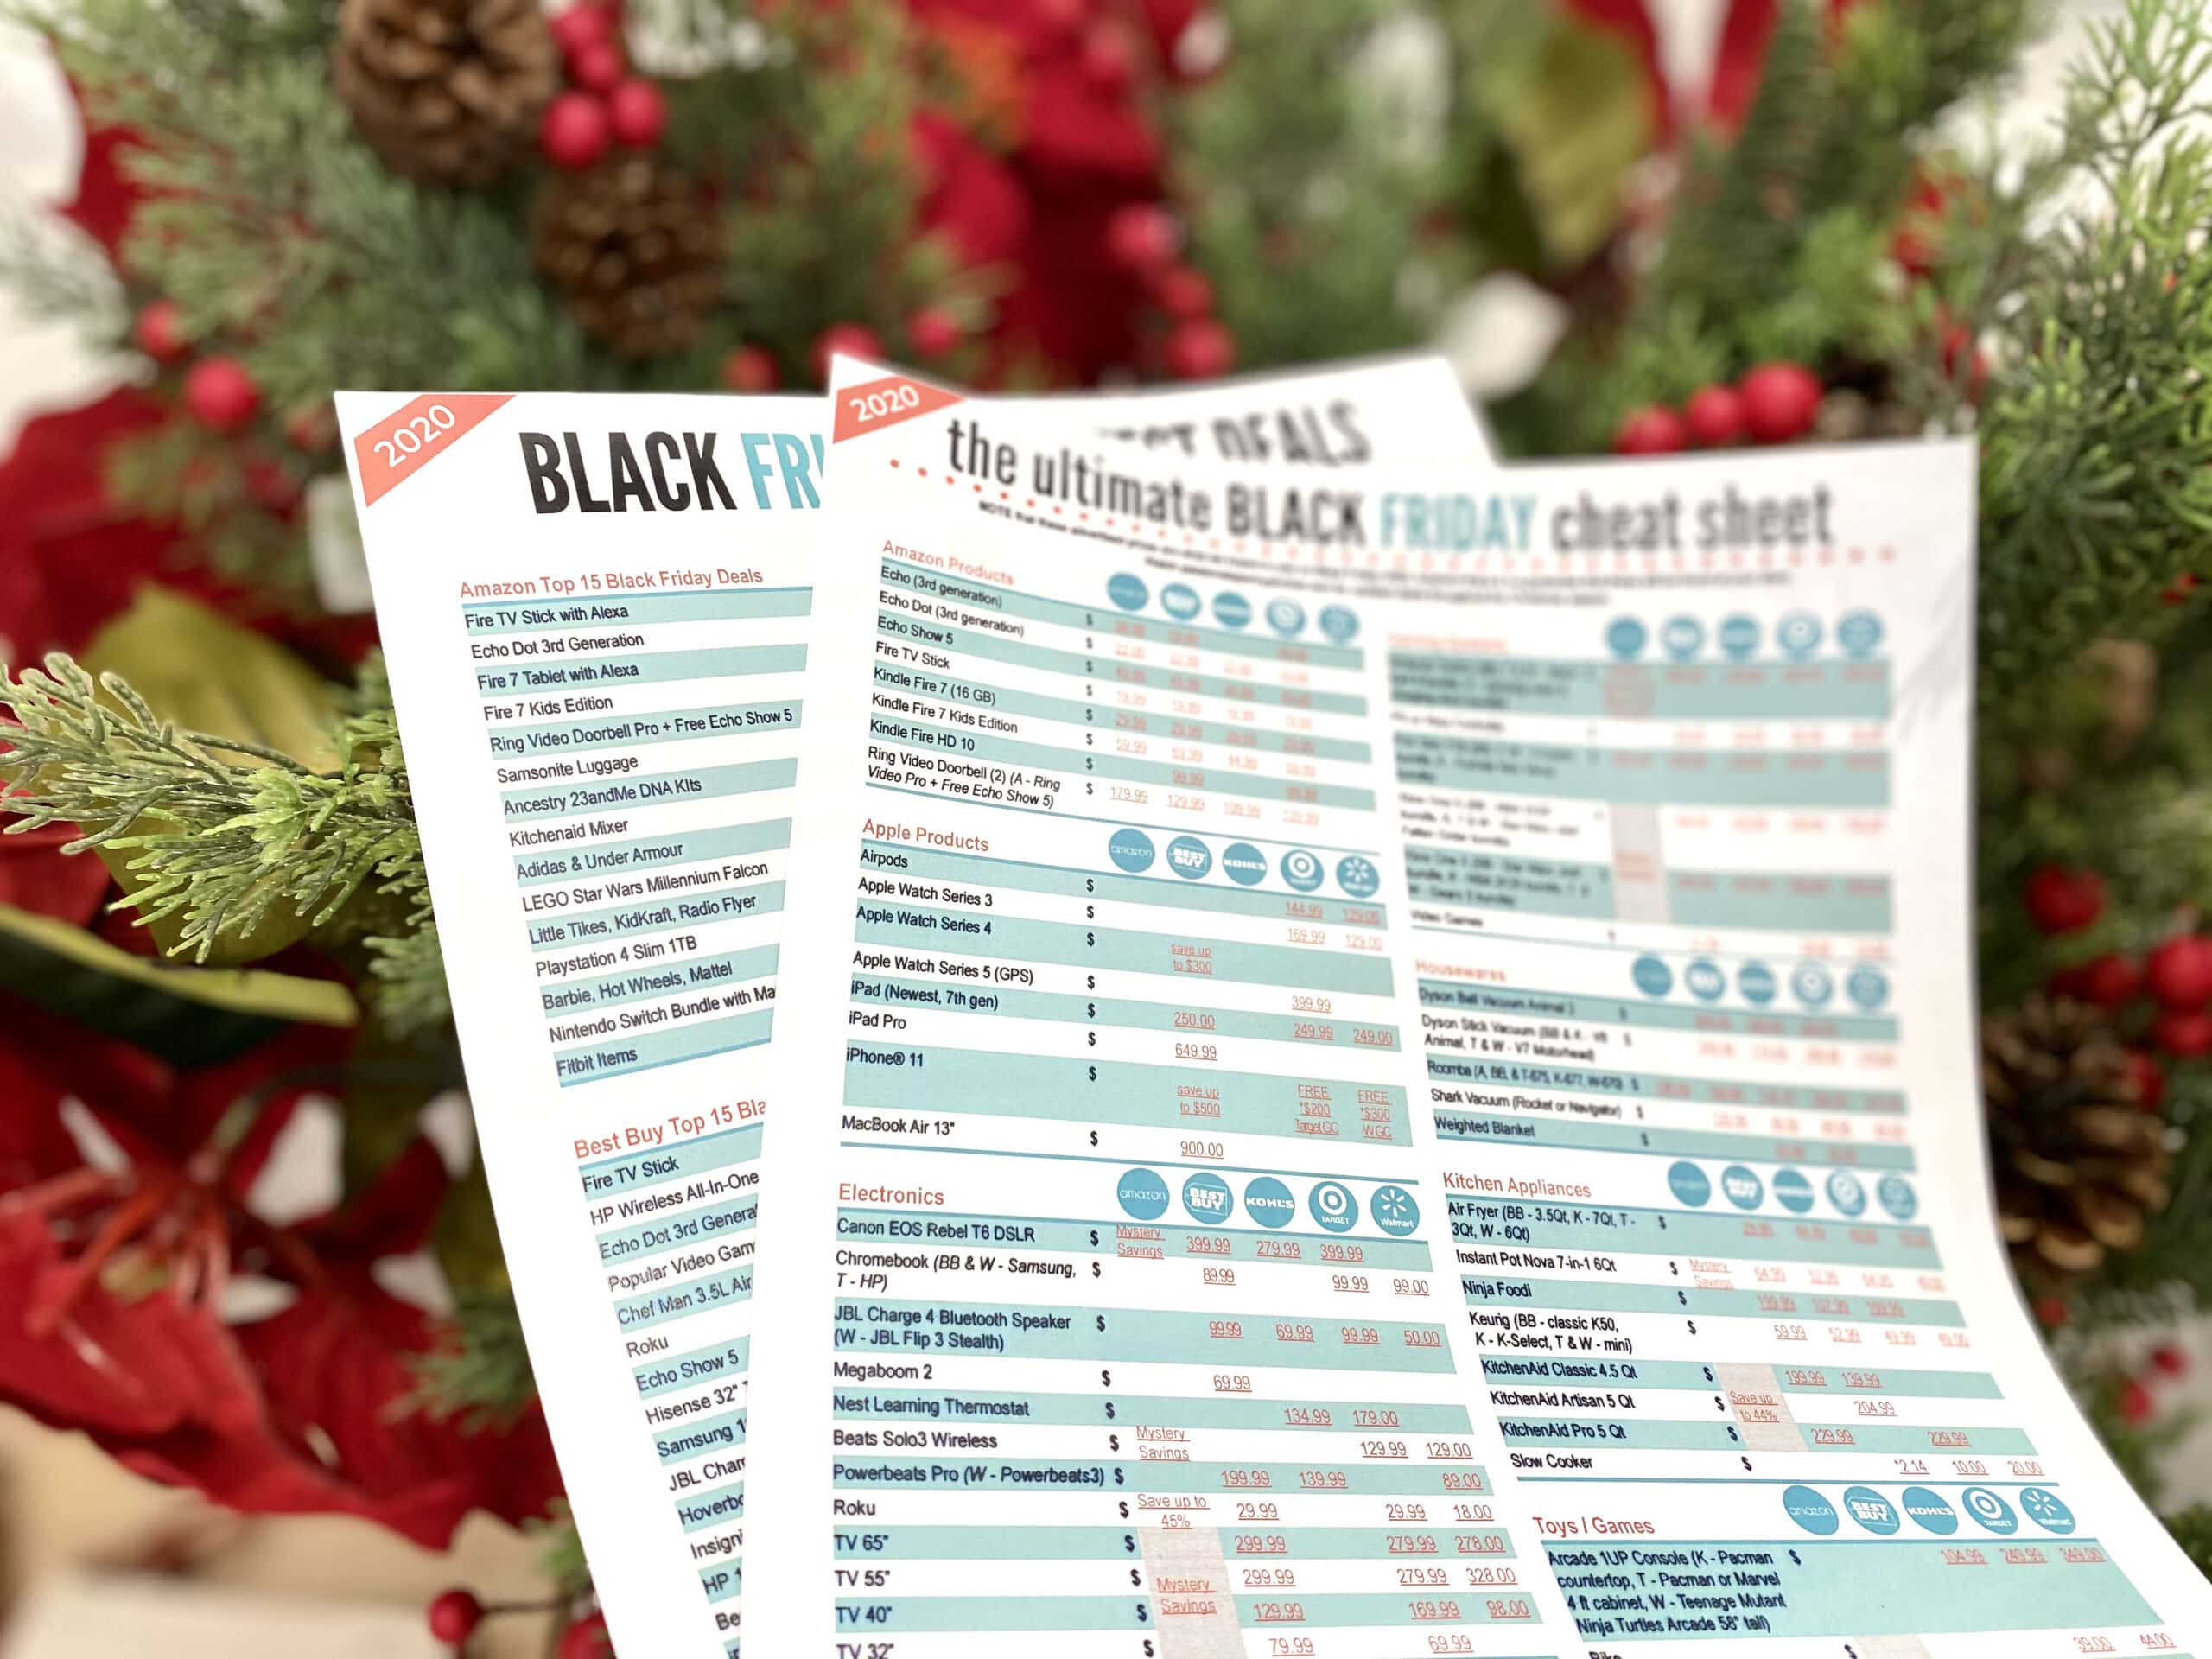 black friay cheat sheet